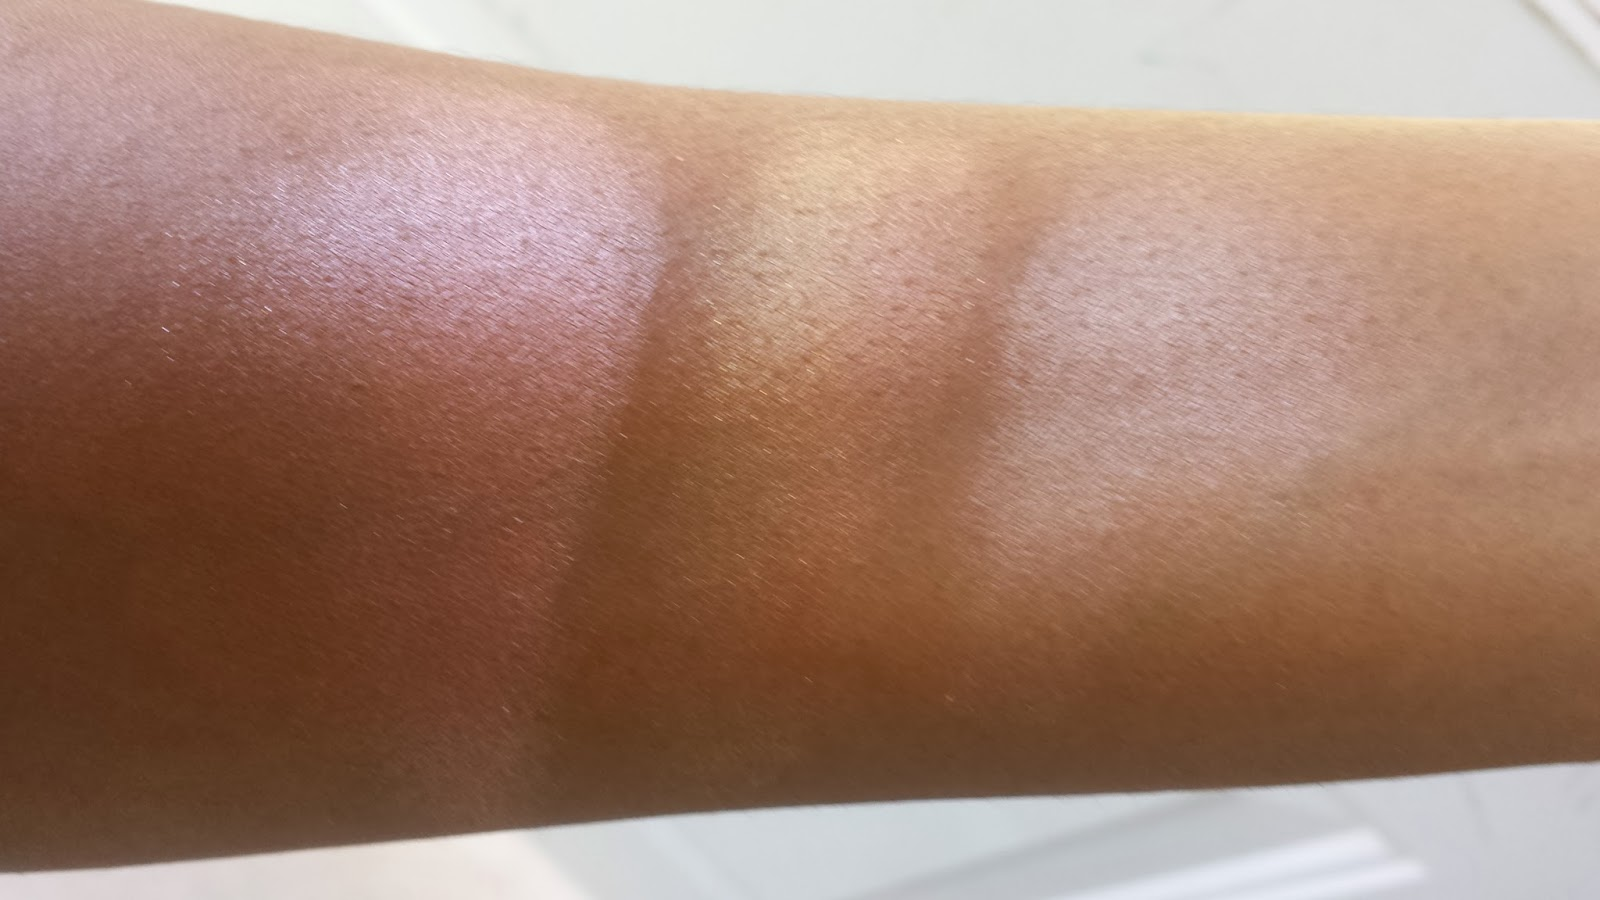 Laura Mercier 'Pink Mosaic' Shimmer Bloc, M.A.C 'Centre of The Universe' Mineralized Skinfinish, Smashbox 'Baked Starburst' swatches www.modenmakeup.com